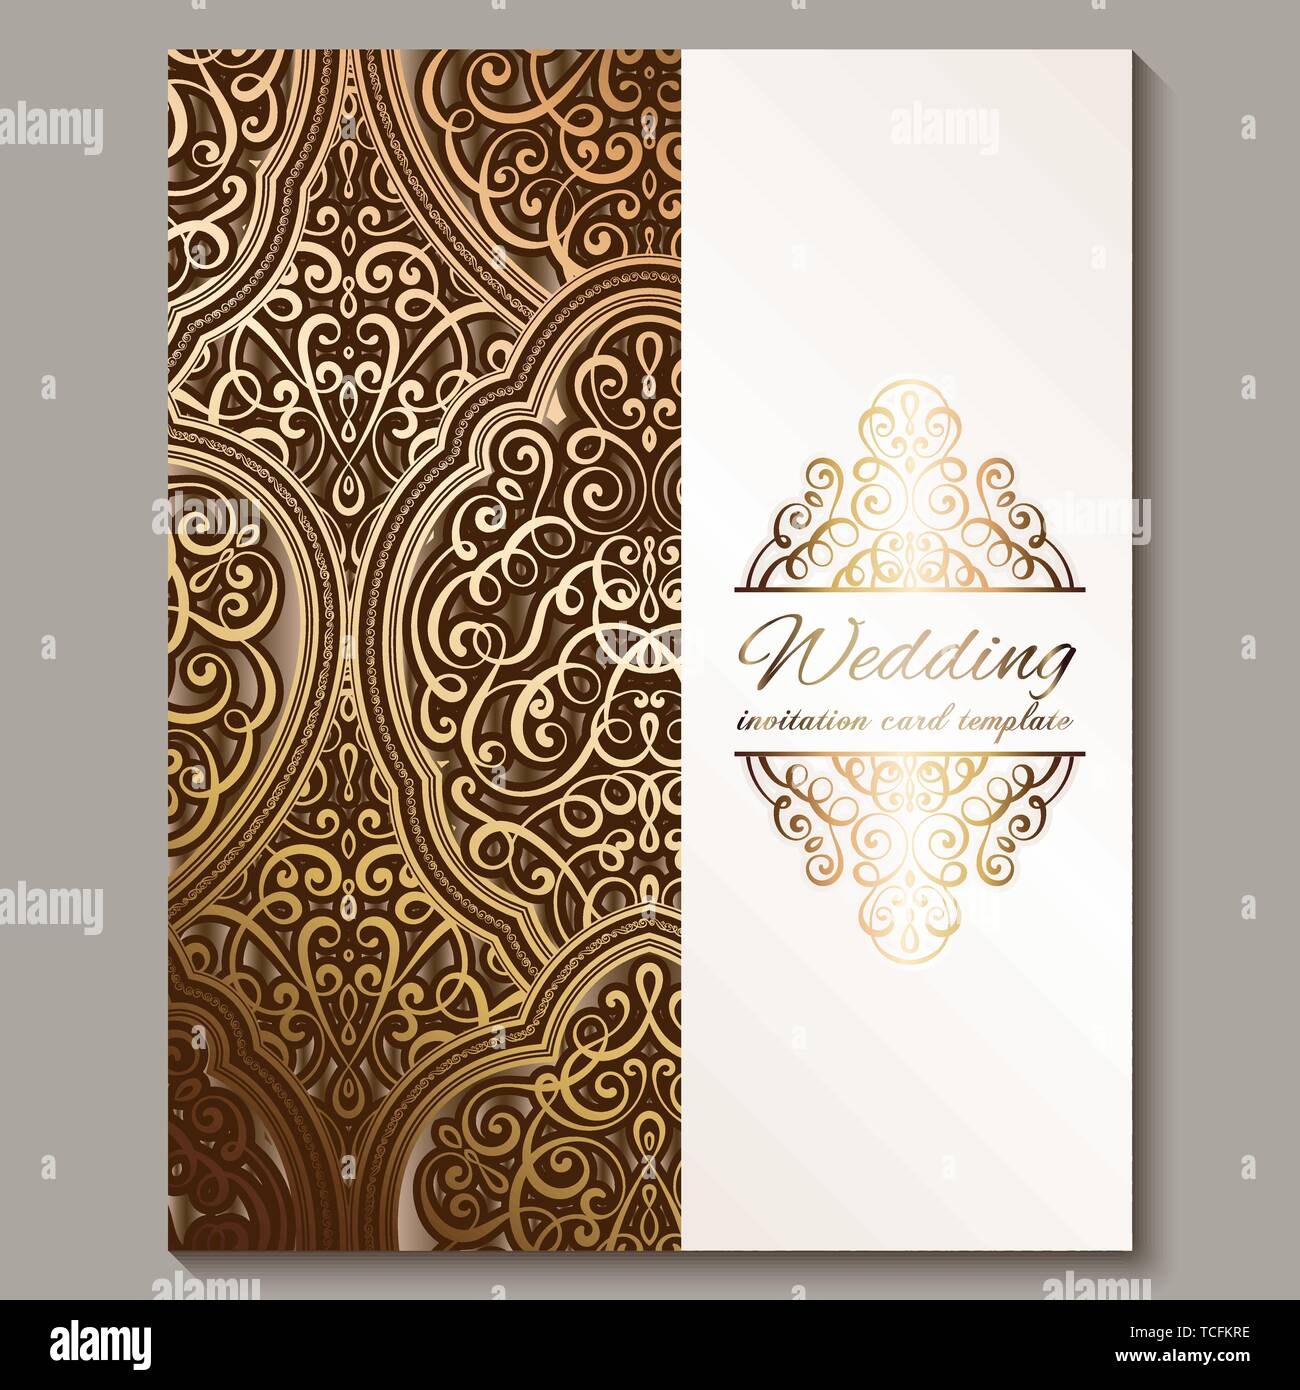 Wedding Invitation Card With Bronze And Gold Shiny Eastern